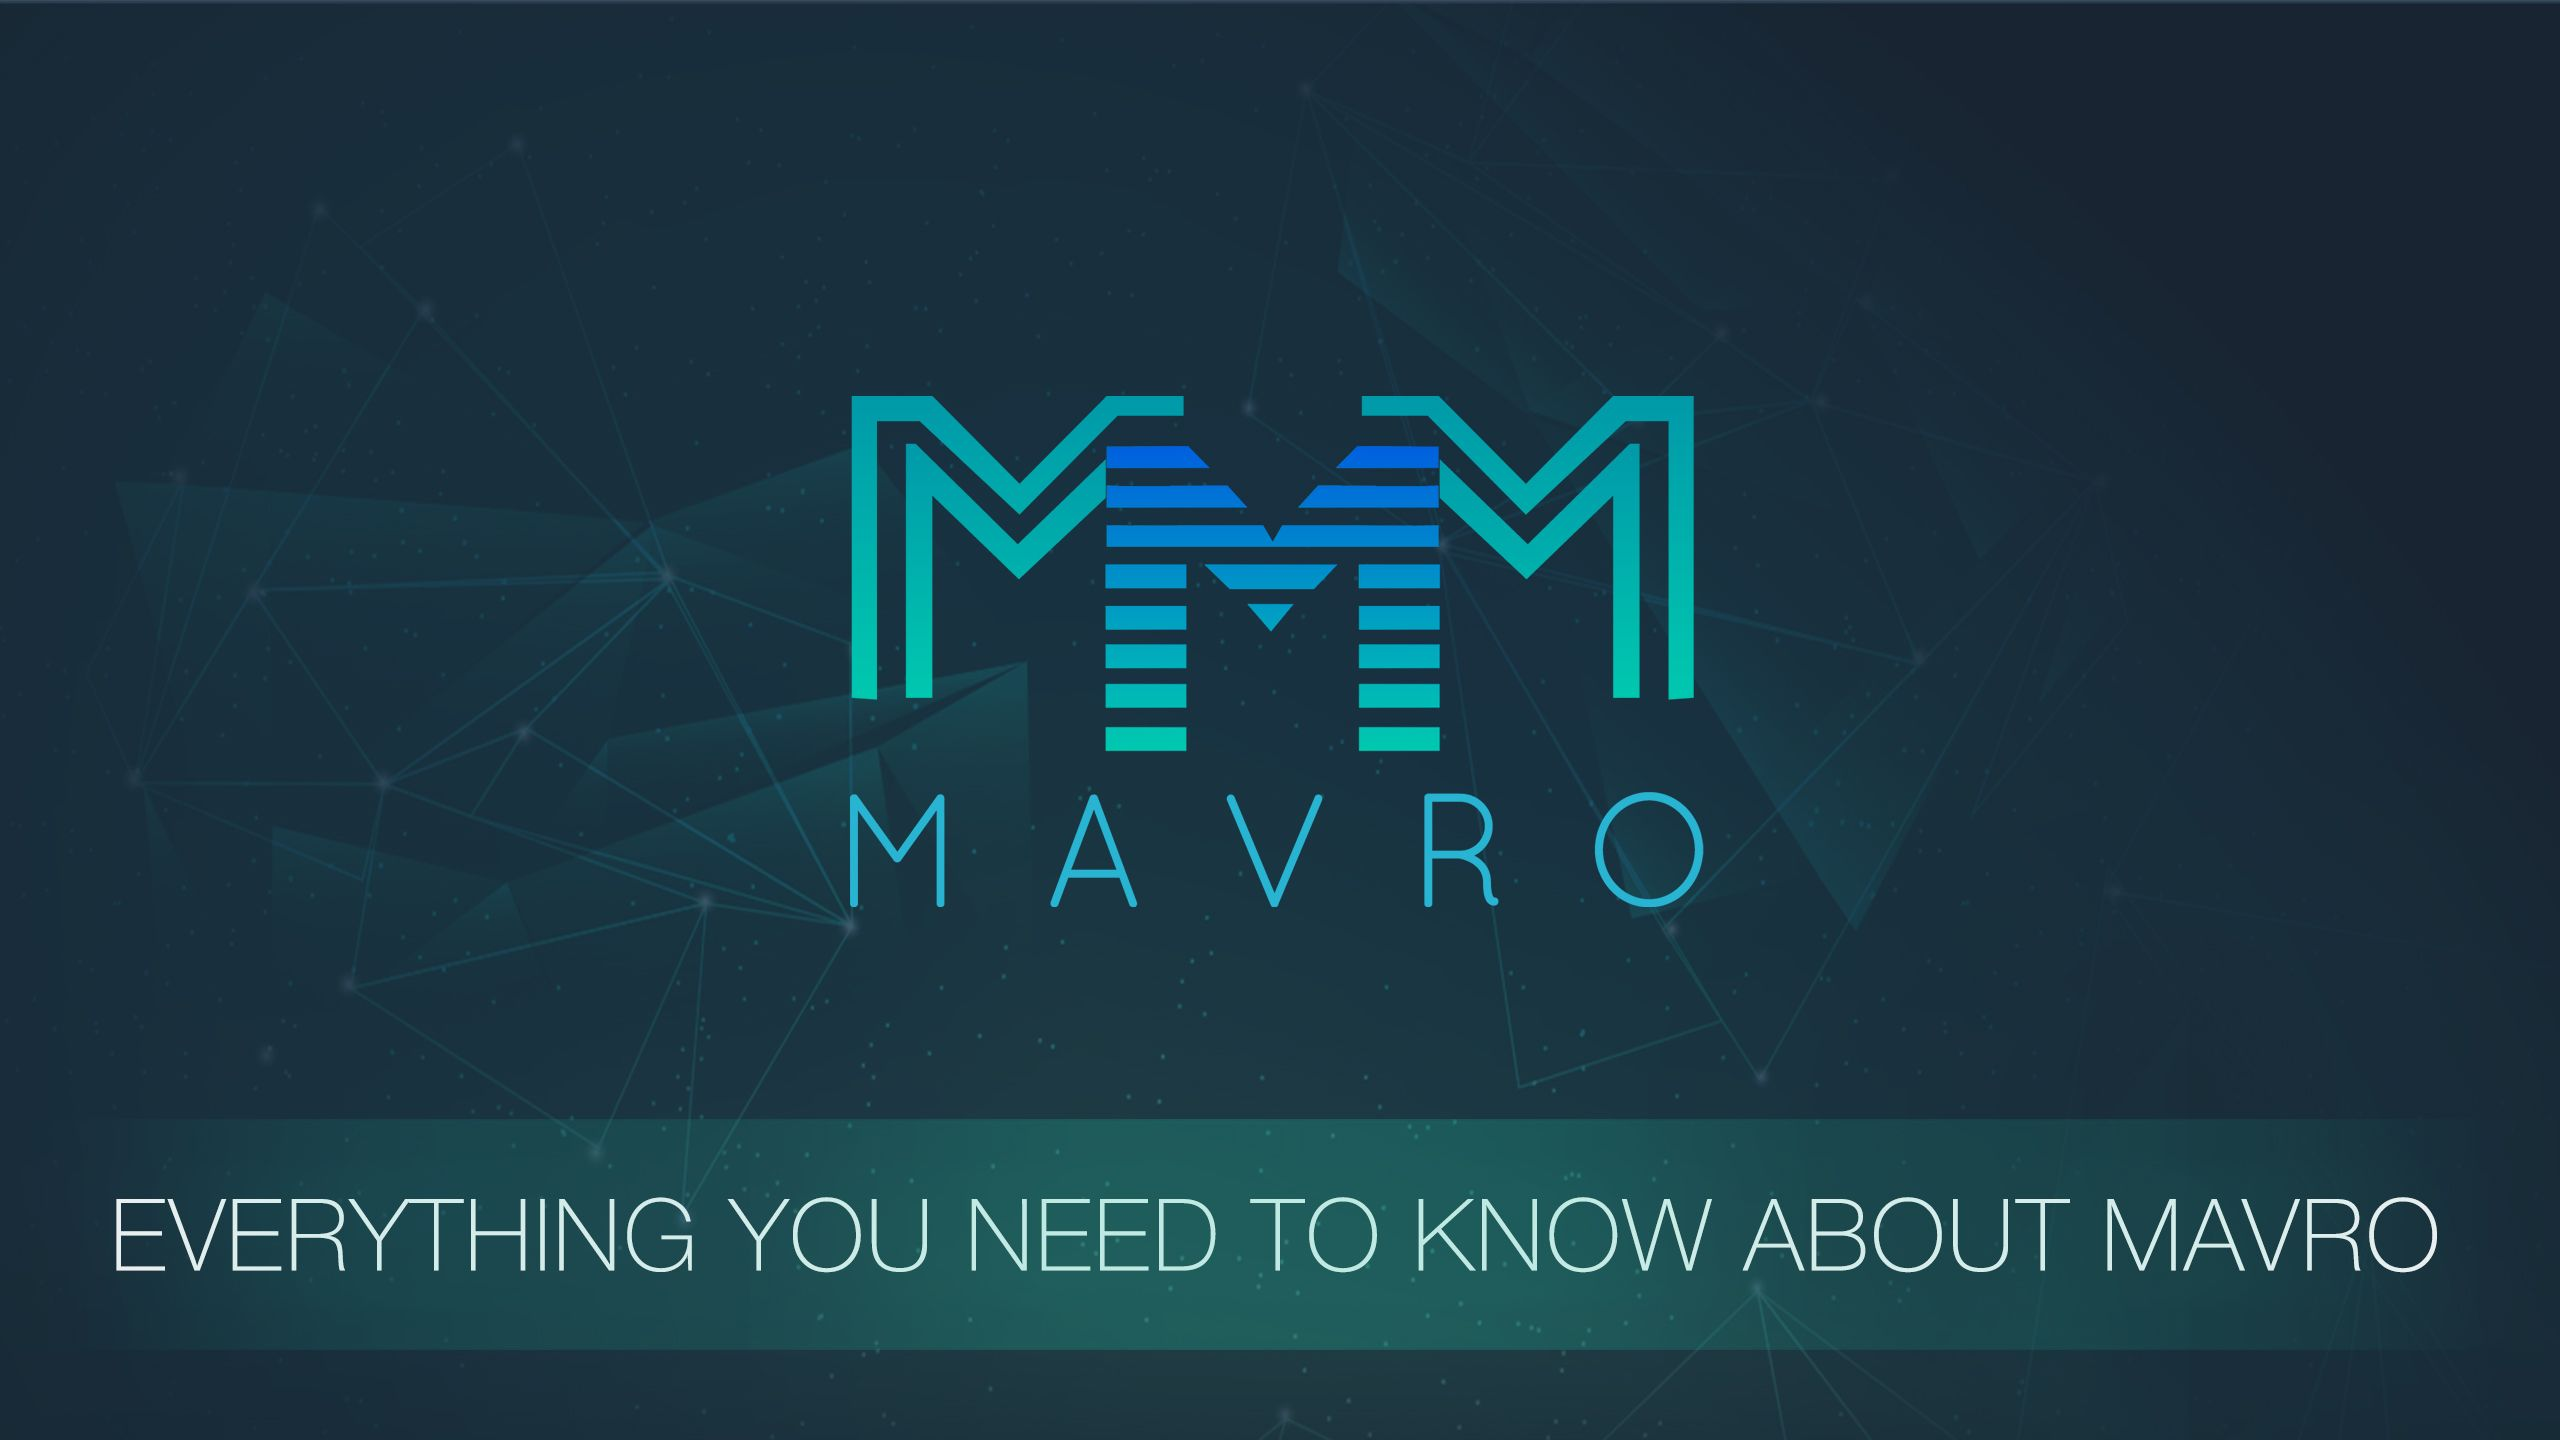 BLOG_POST_0_EVERYTHING_YOU_NEED_TO_KNOW_ABOUT_MAVRO_0.jpg